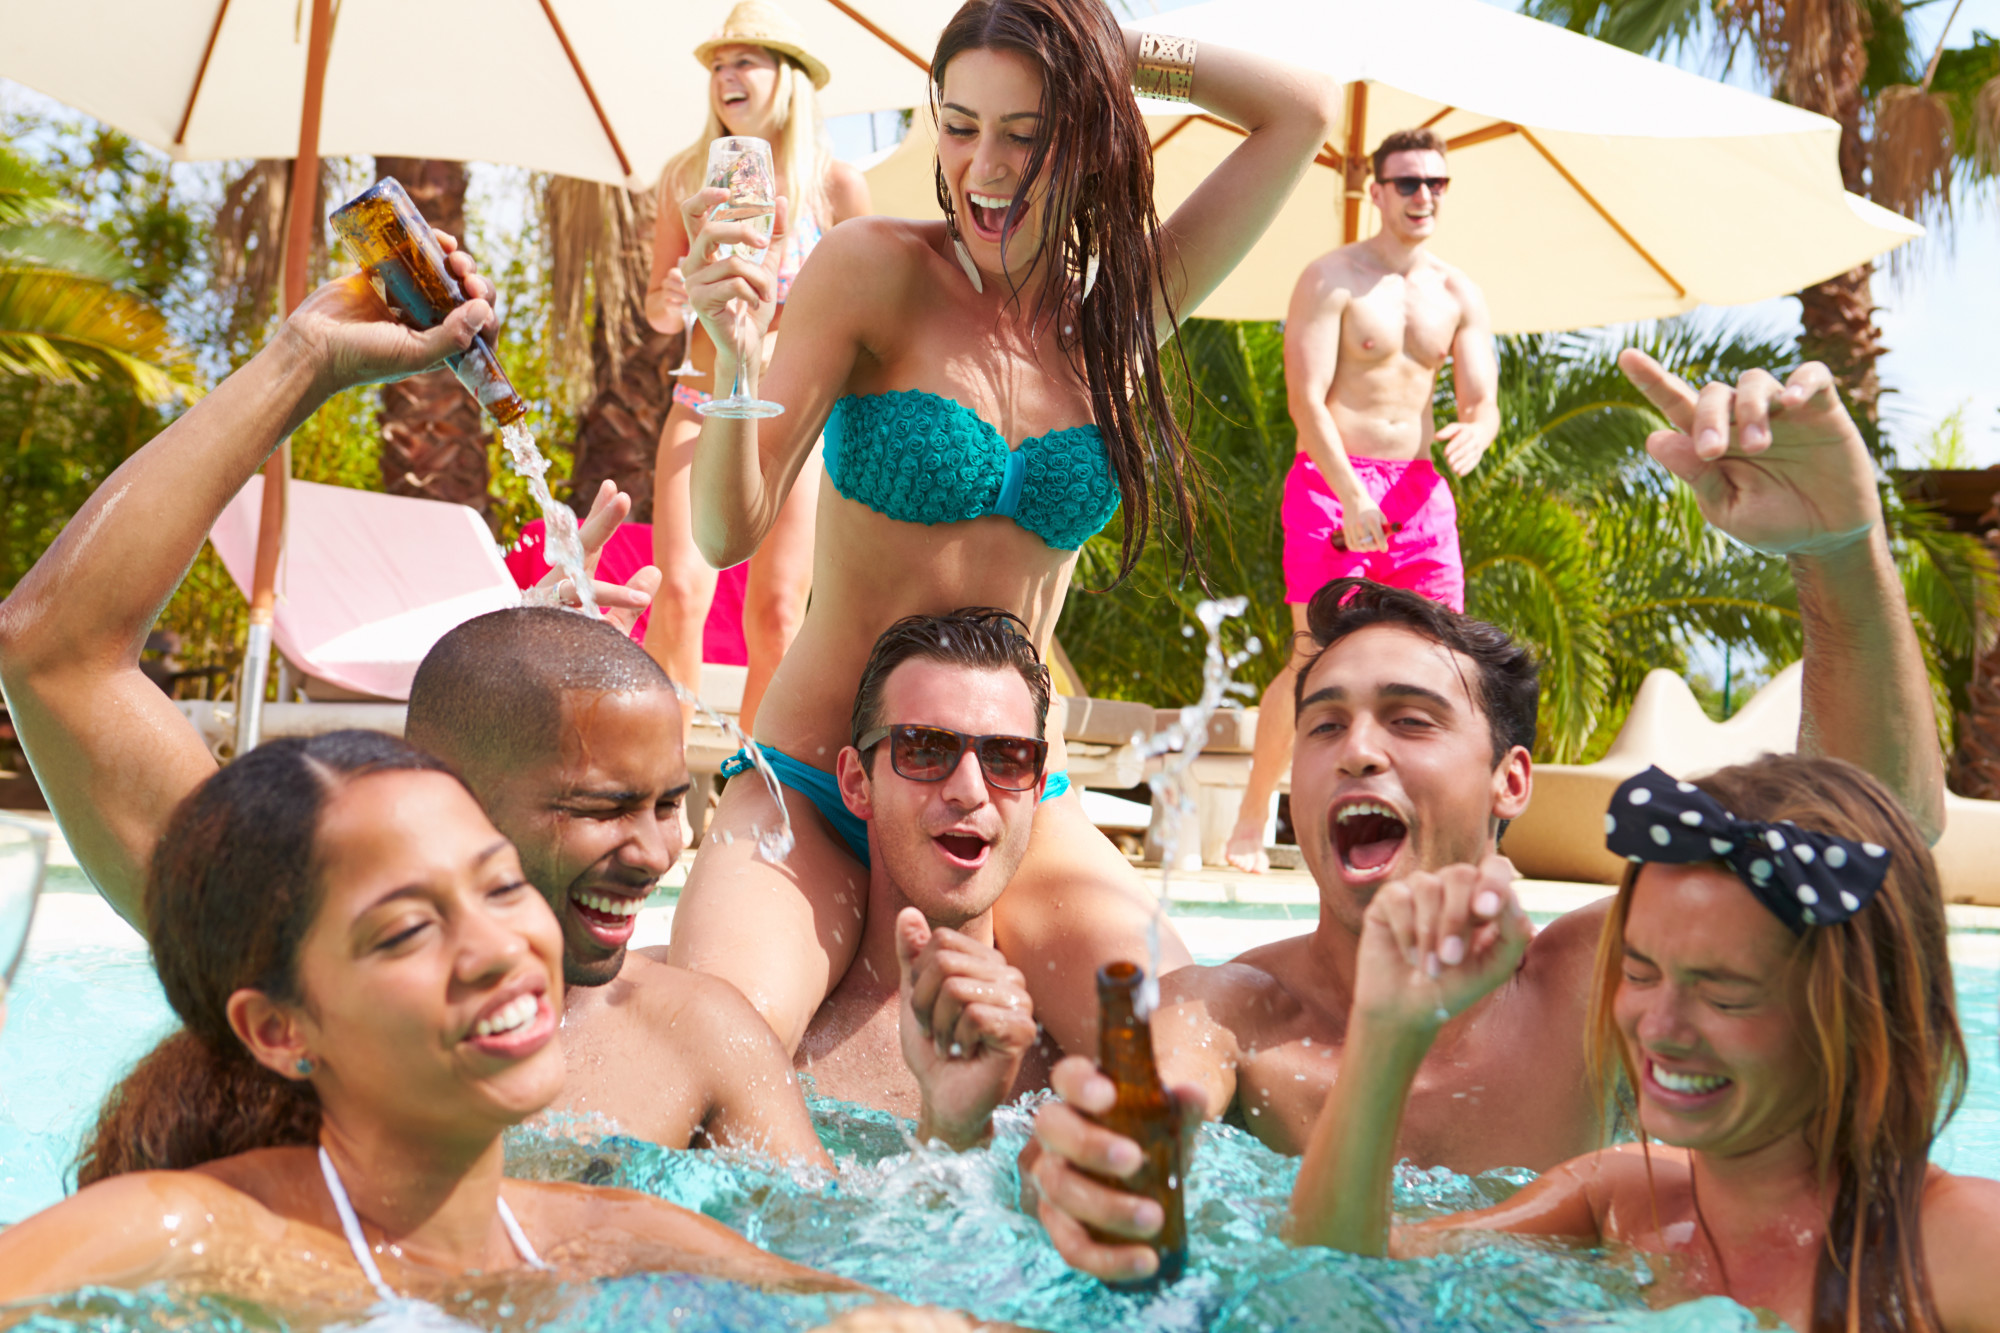 8 Fun and Festive Pool Party Themes for the Holidays